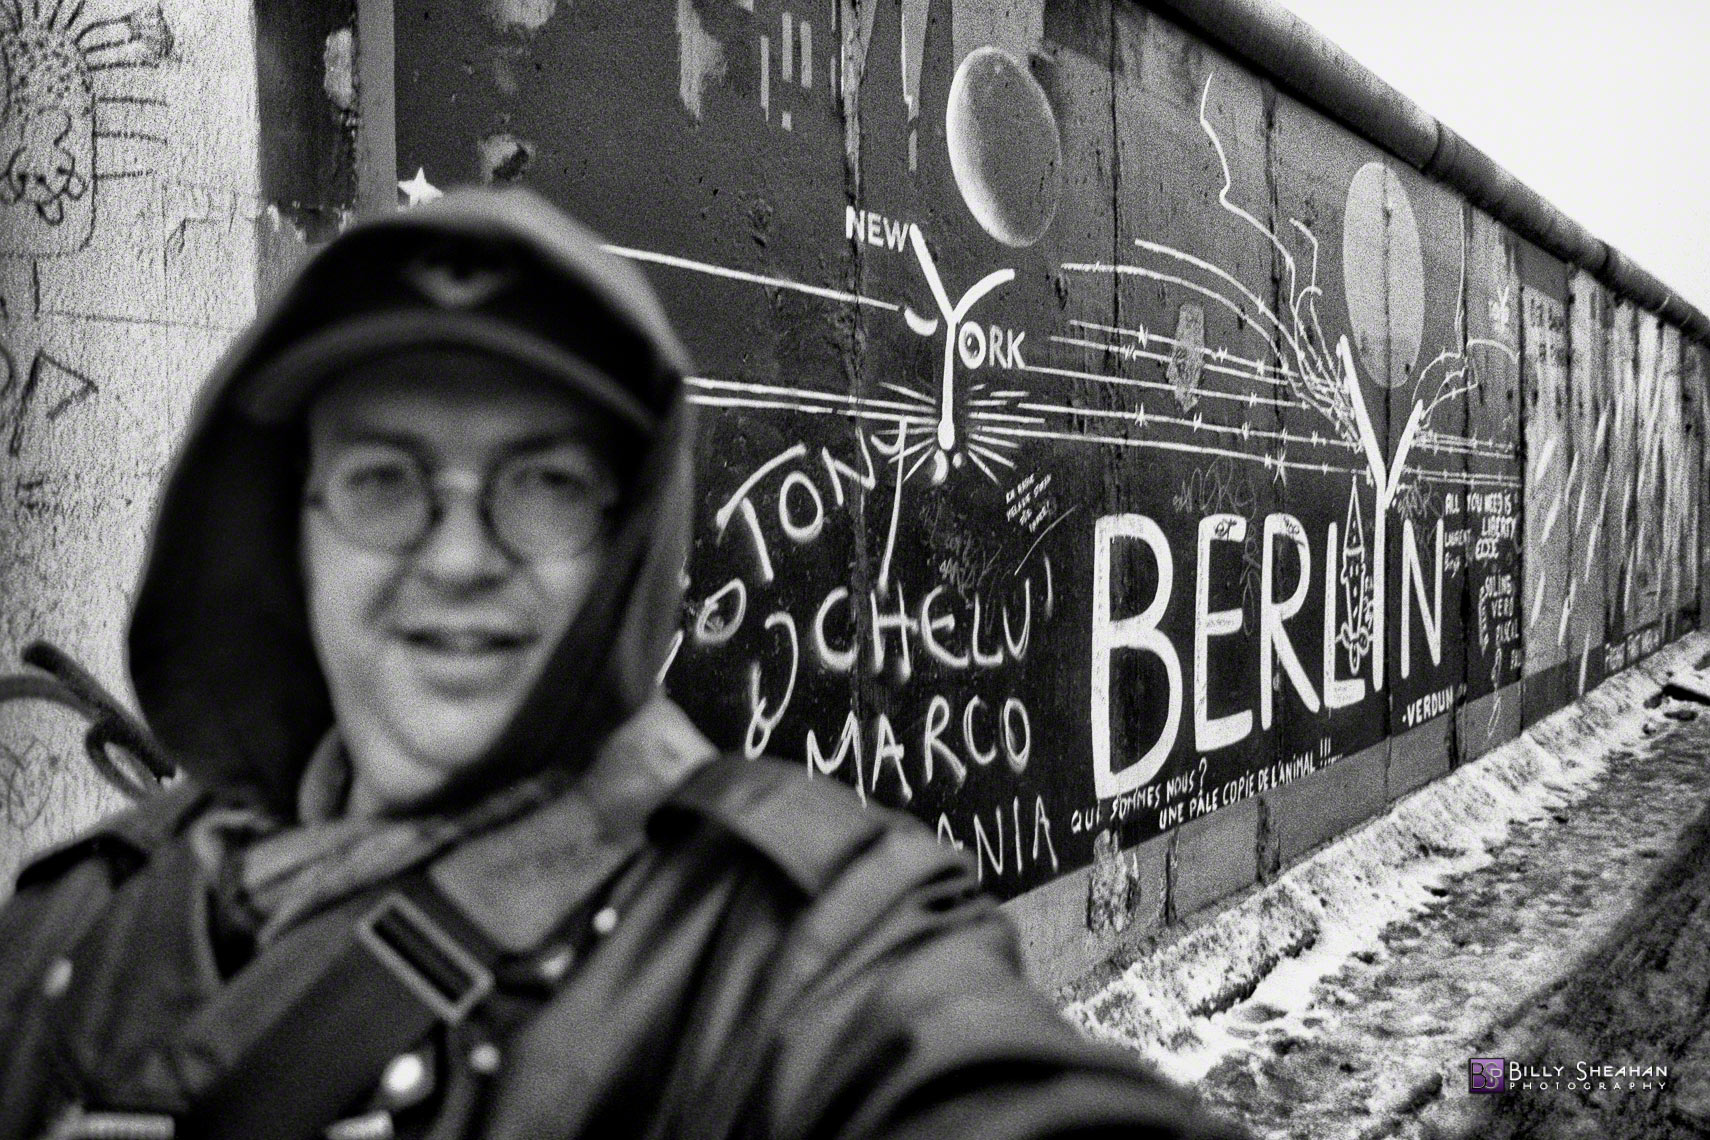 Billy_Berlin_Wall_Selfie_Germany-359_22_BW_D